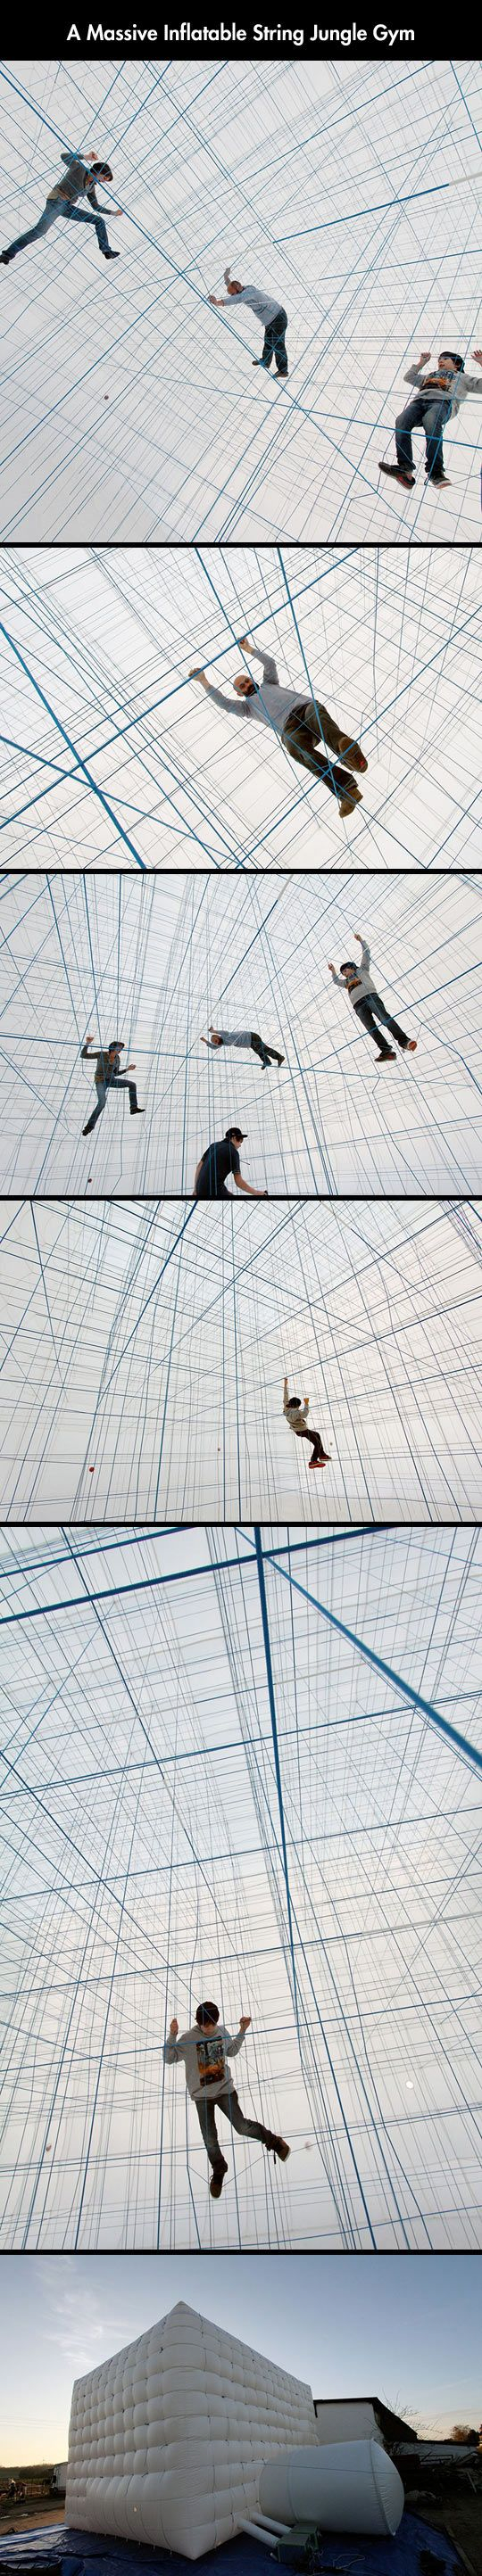 The Cube In Real Life - funny pictures #funnypictures